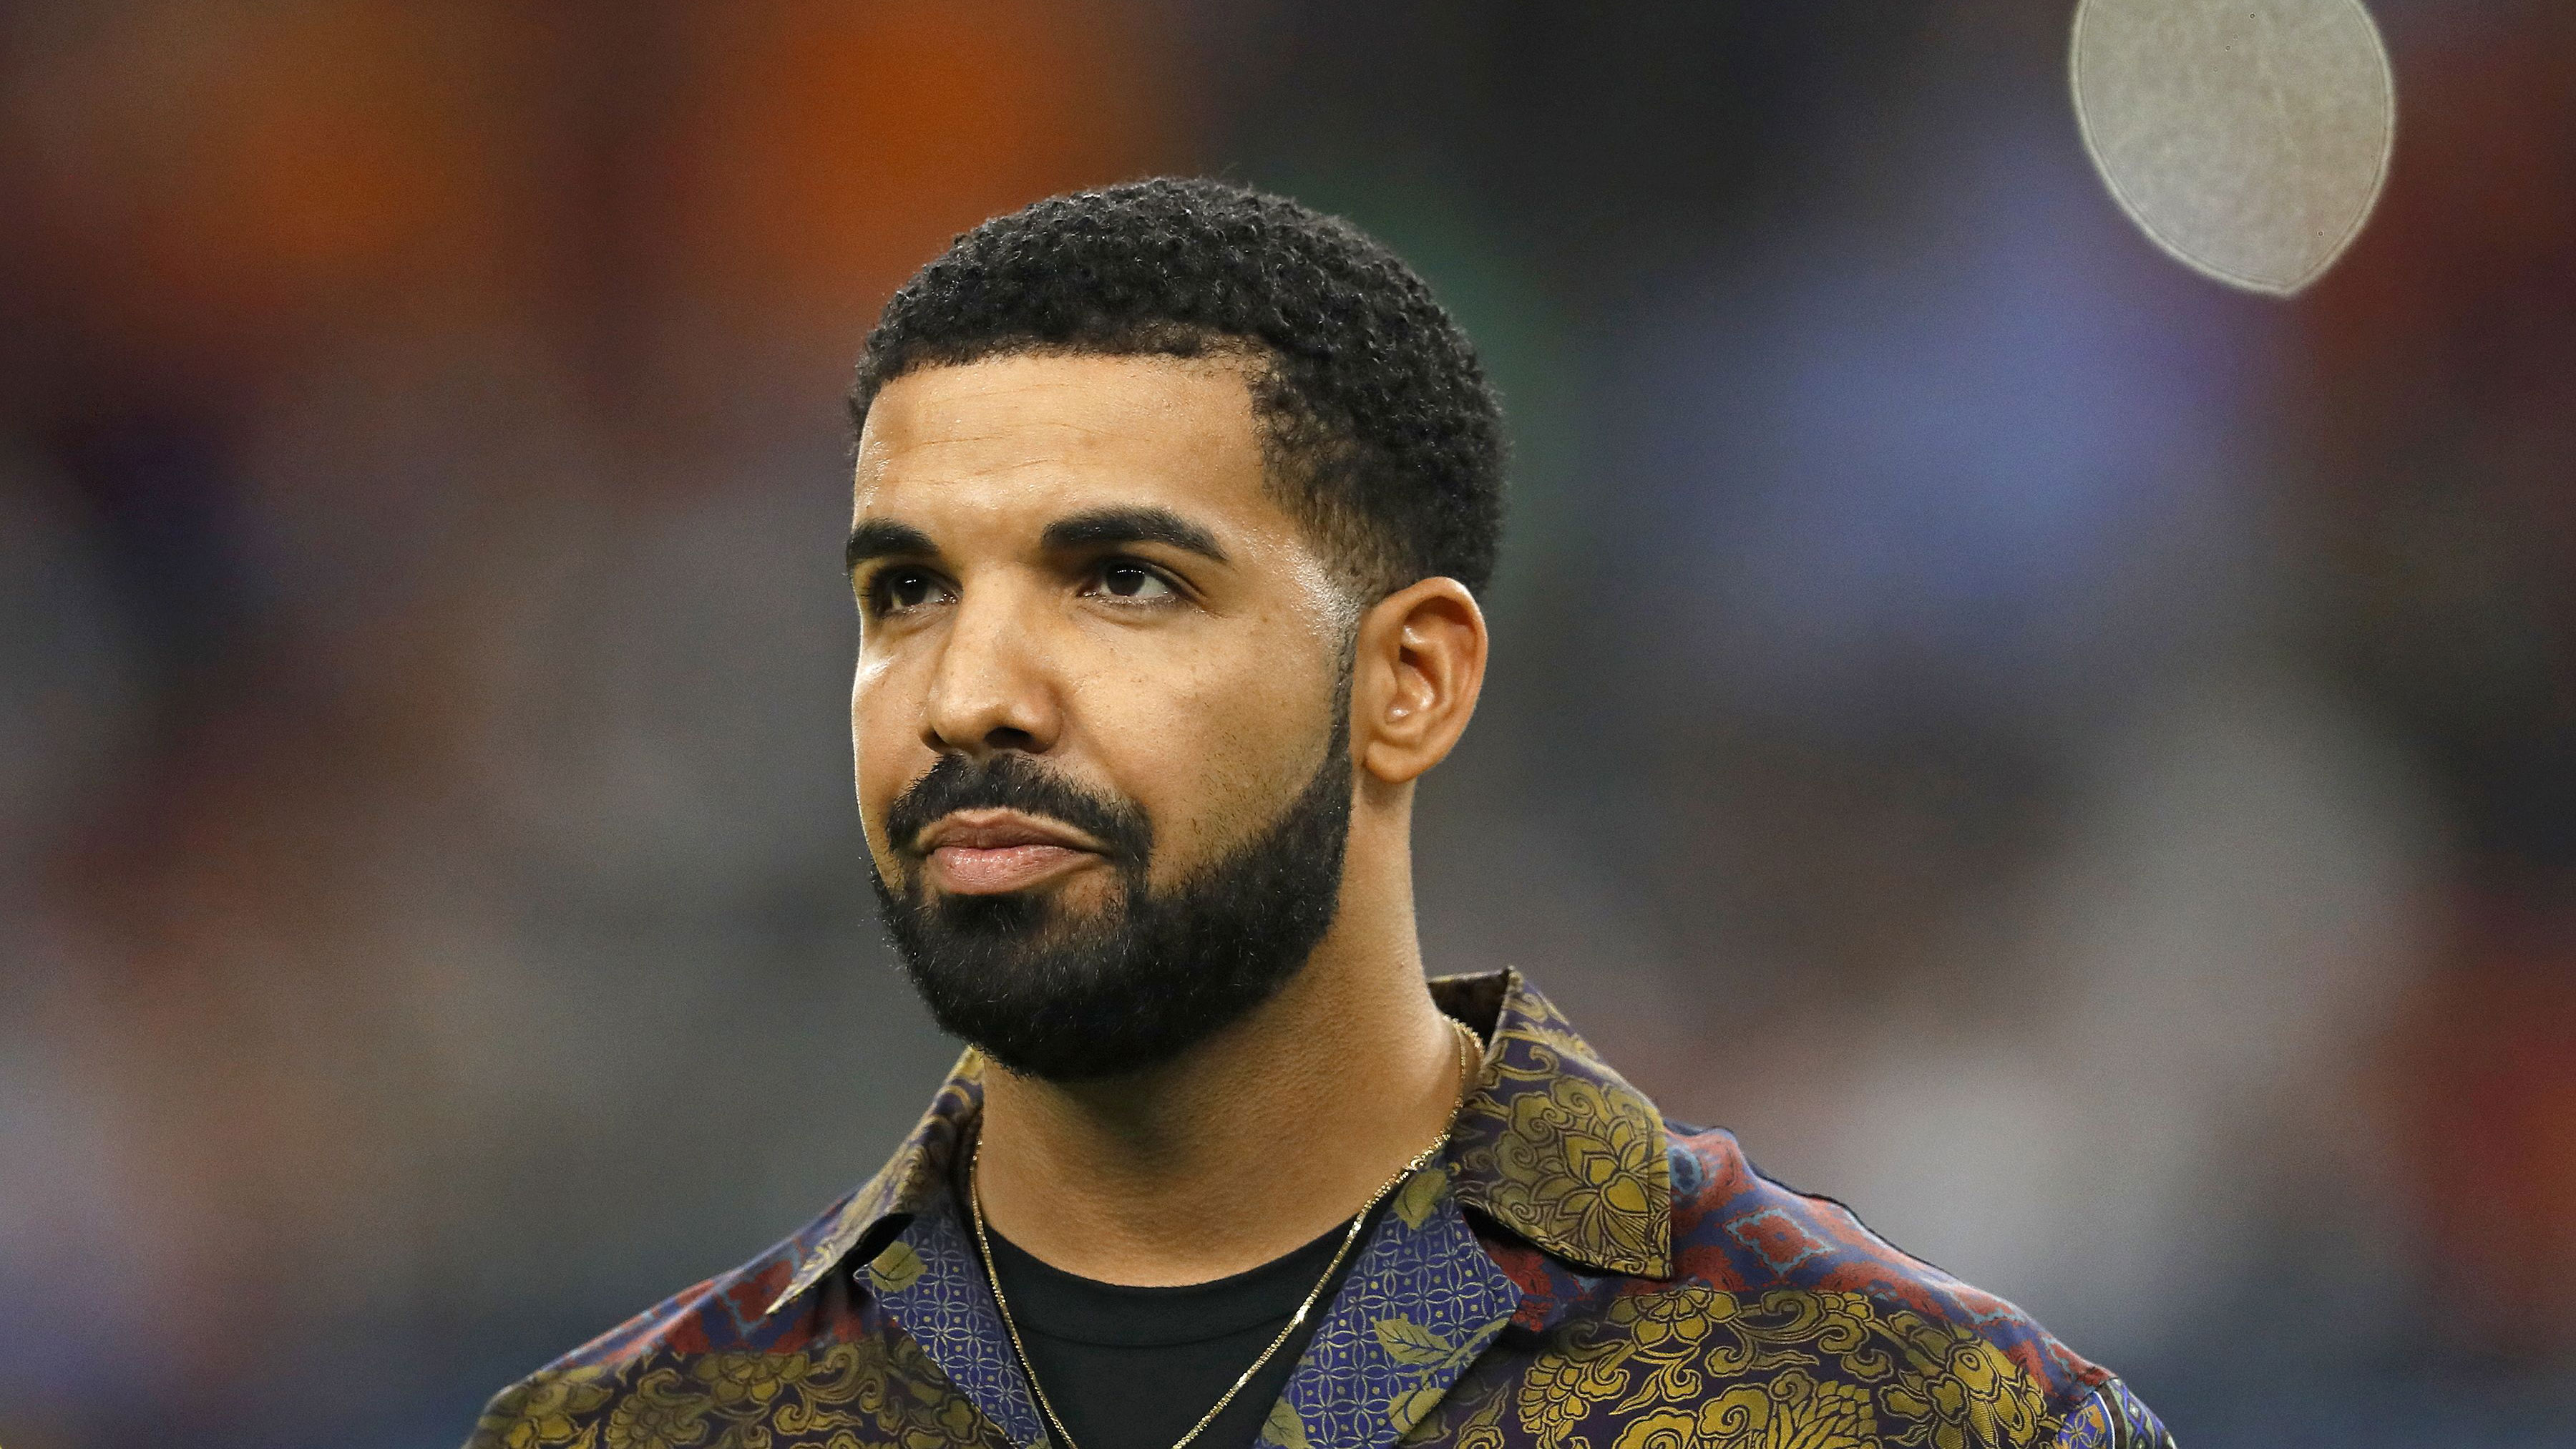 FILES-US-CANADA-ENTERTAINMENT-MUSIC-DRAKE